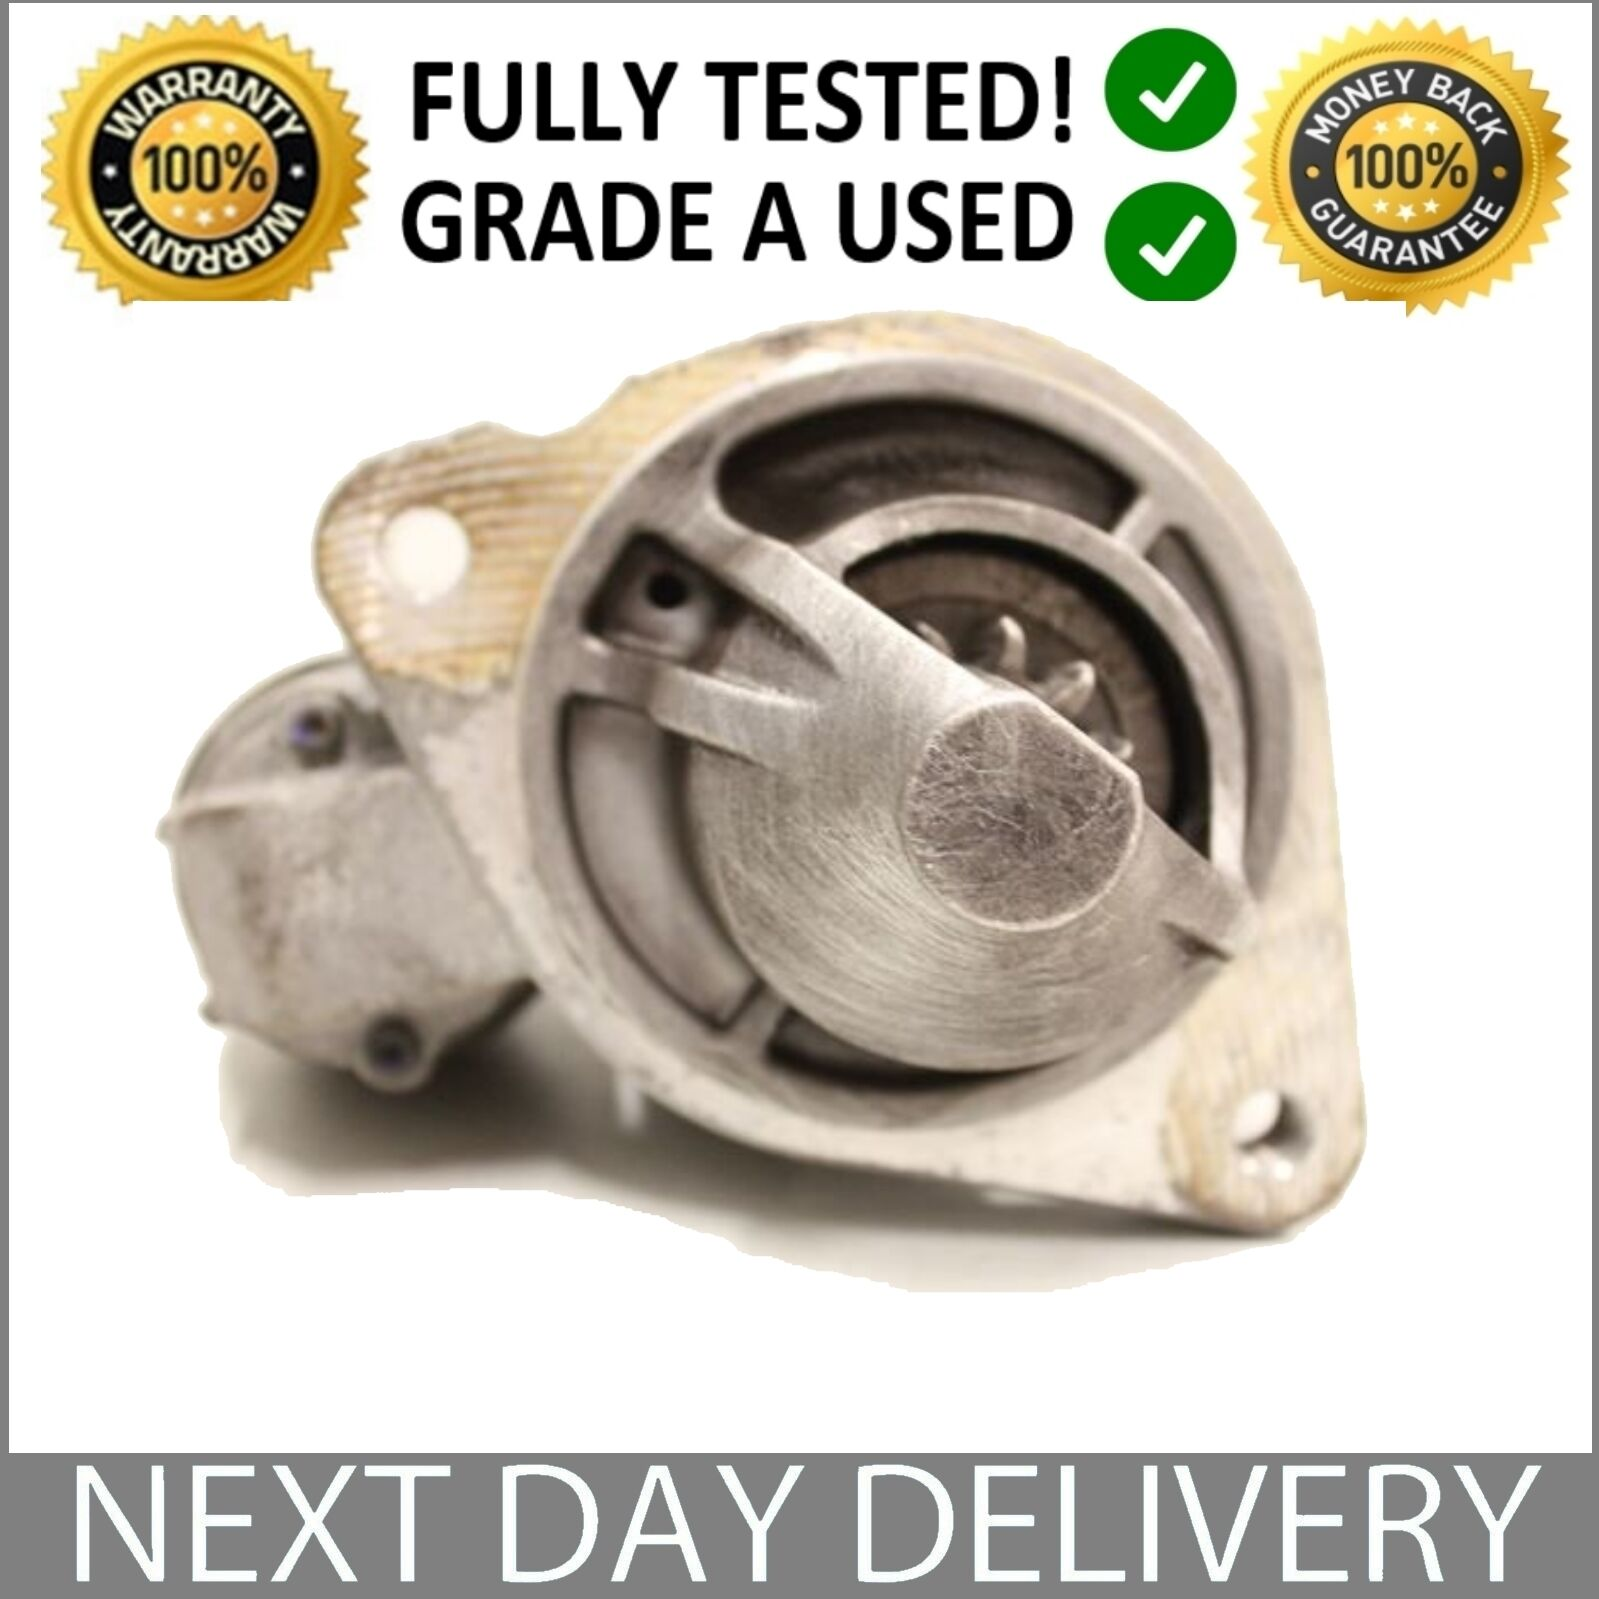 Genuine Oe Ford Starter Motor 10 Petrol Eco Boost Fiesta Mk6 Bench Test Solenoid 1 Of 1free Shipping